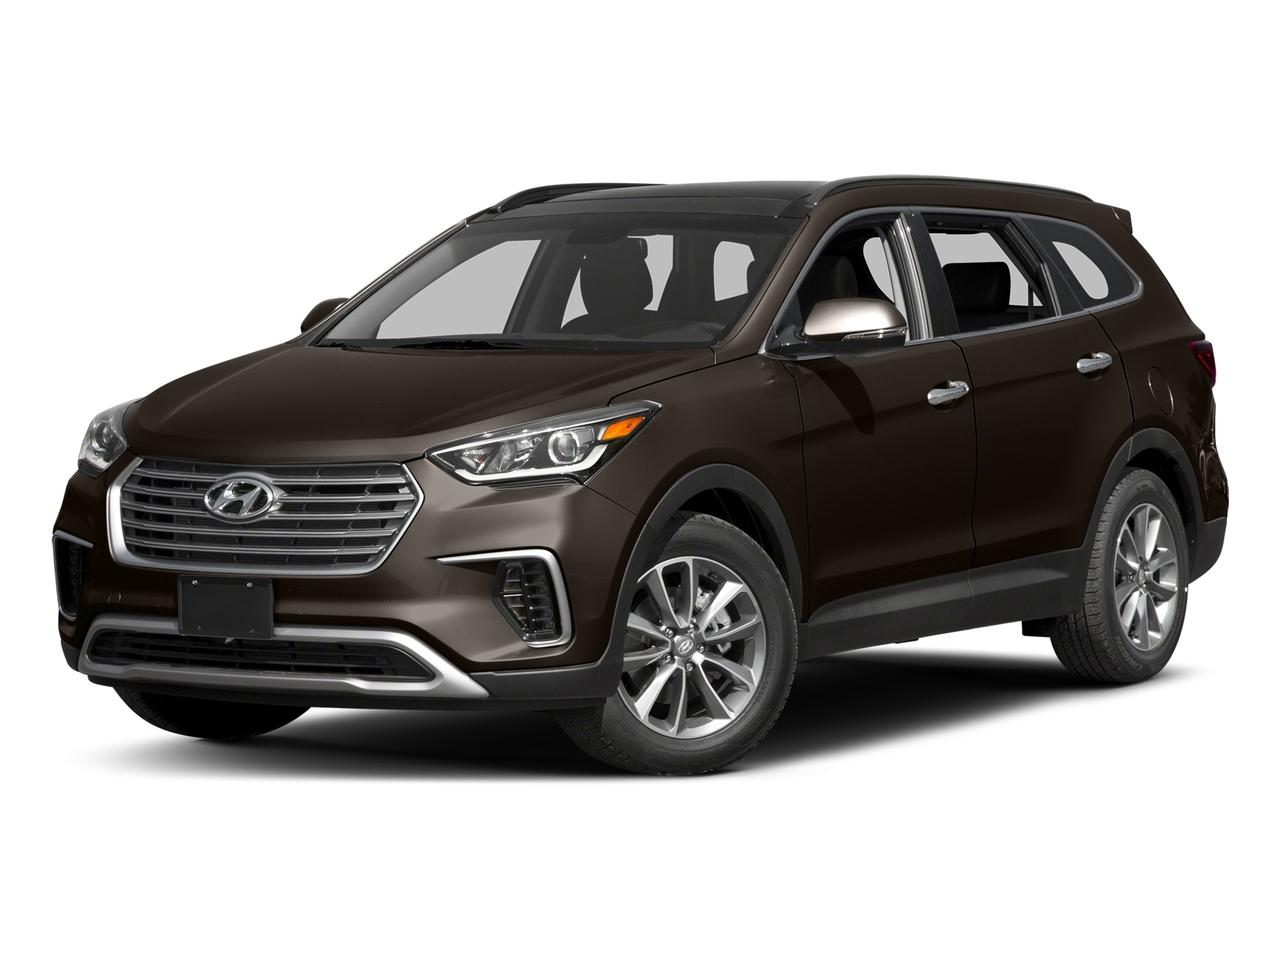 2017 Hyundai Santa Fe Vehicle Photo in Pahrump, NV 89048